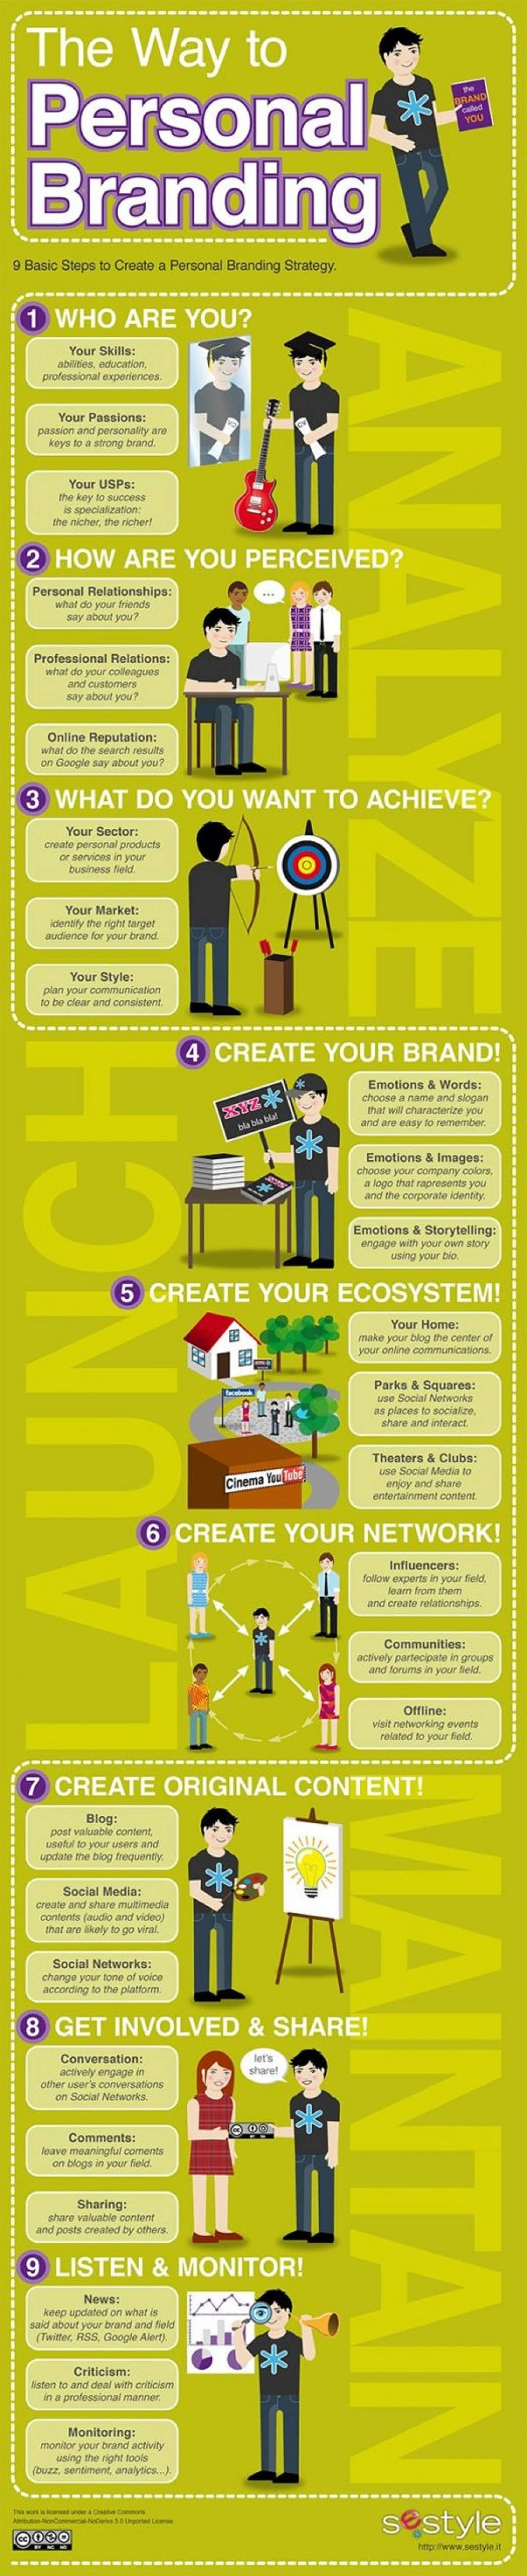 why-everybody-should-be-building-a-personal-brand-infographic